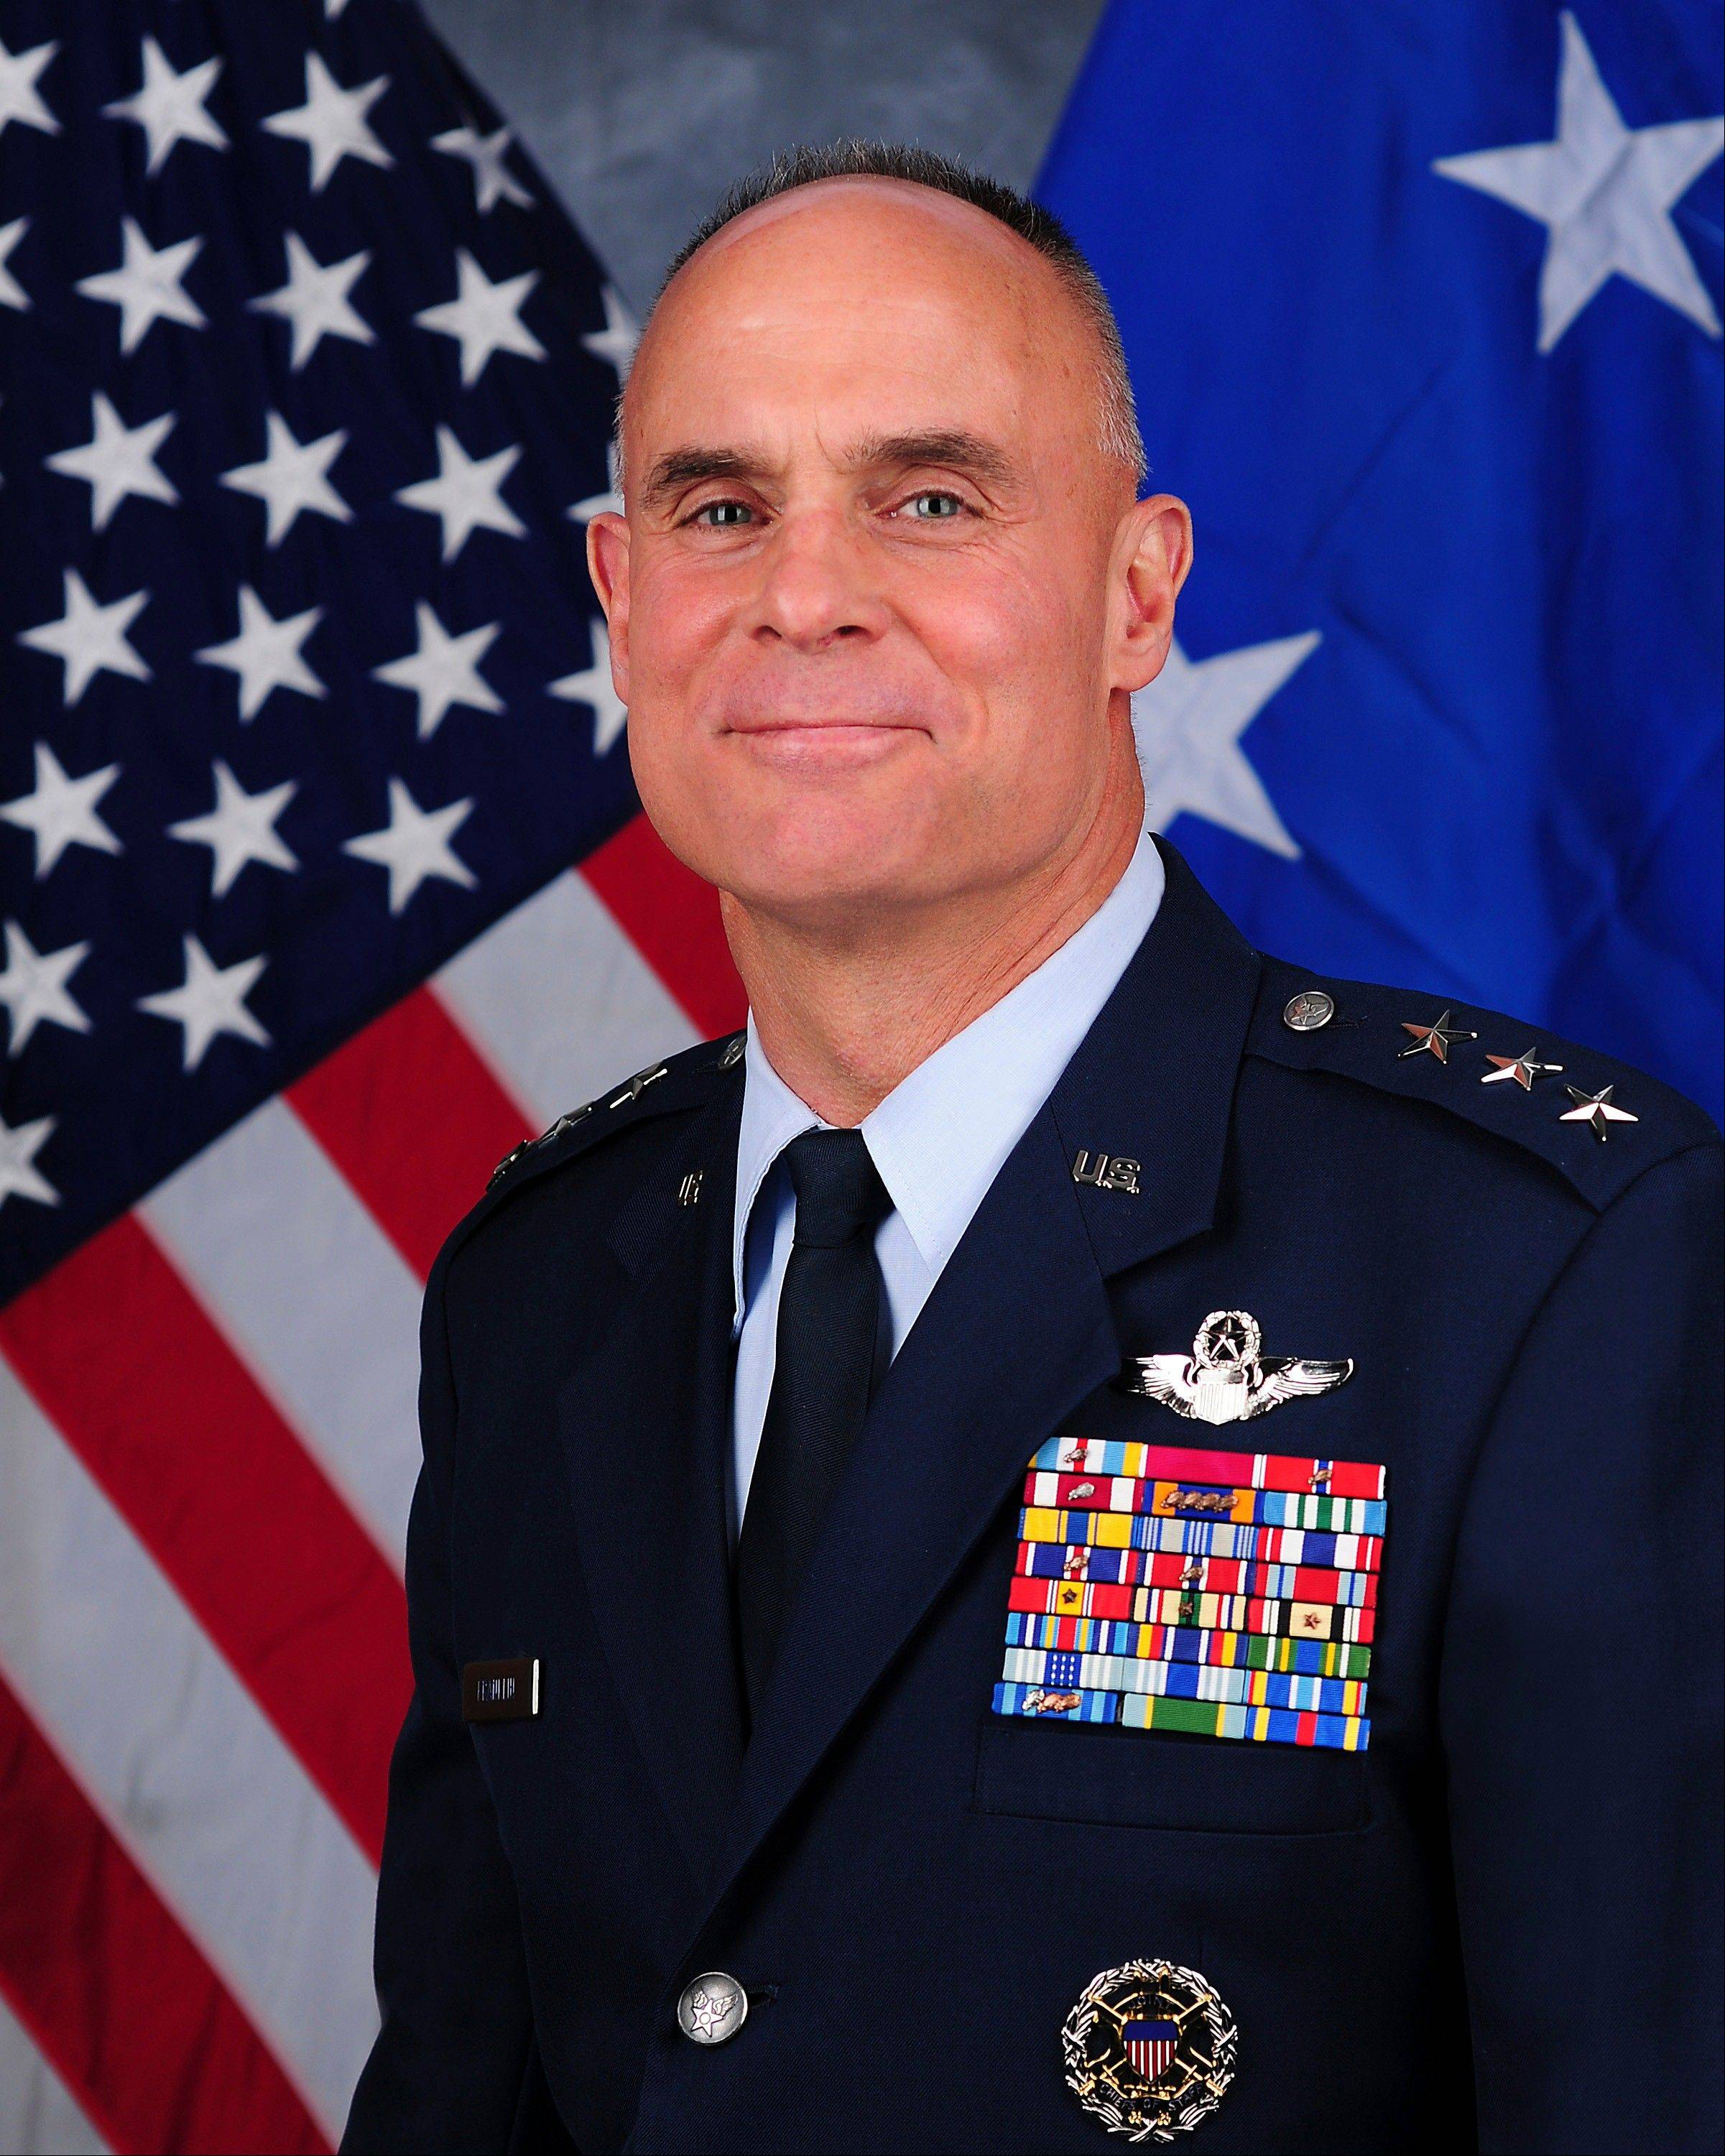 The case involving U.S. Air Force shows Lt. Gen. Craig Franklin, who dismissed charges against a lieutenant colonel convicted of sexual assault, will be reviewed at the top levels of the Pentagon. Franklin�s decision is fueling support for legislation that would prevent commanding officers from overturning rulings made by judges and juries at courts-martial proceedings.